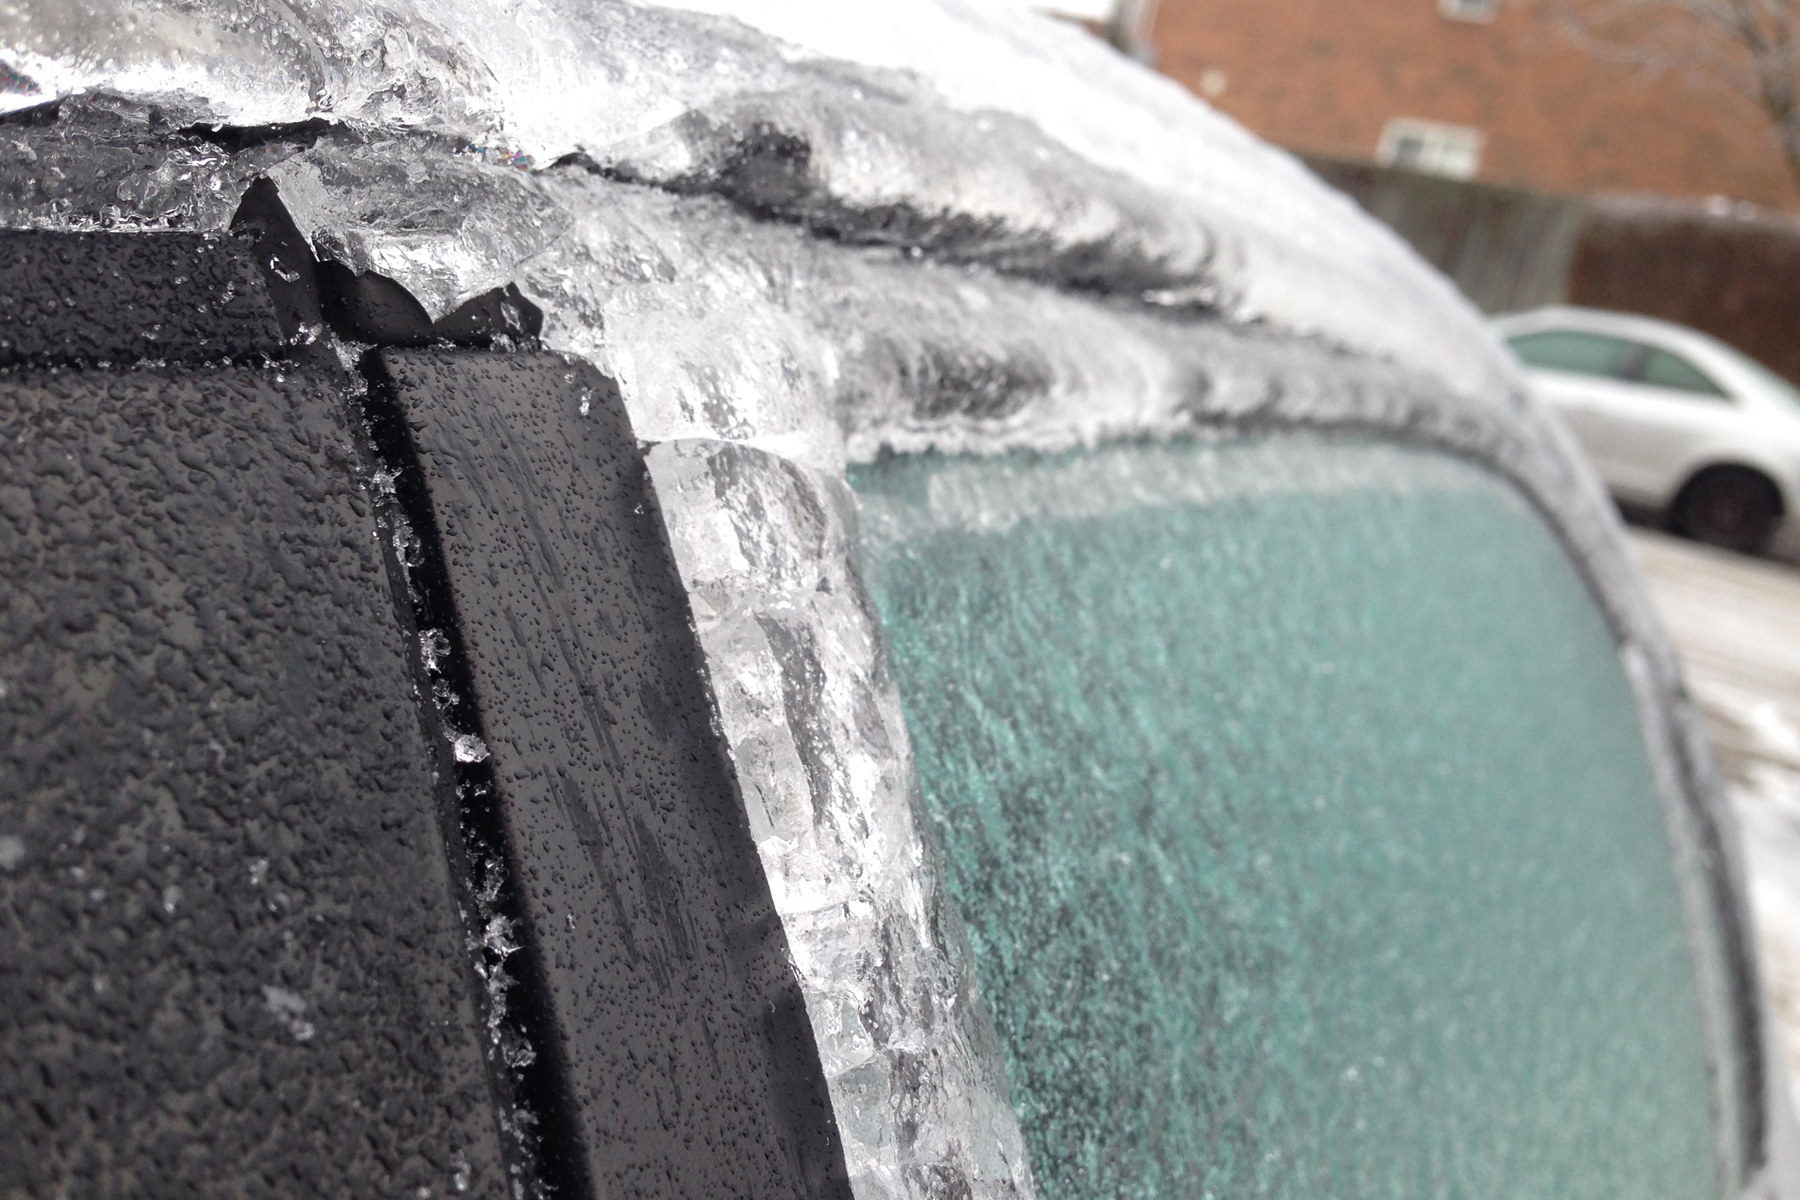 Freezing rain in the forecast for Peel on Monday